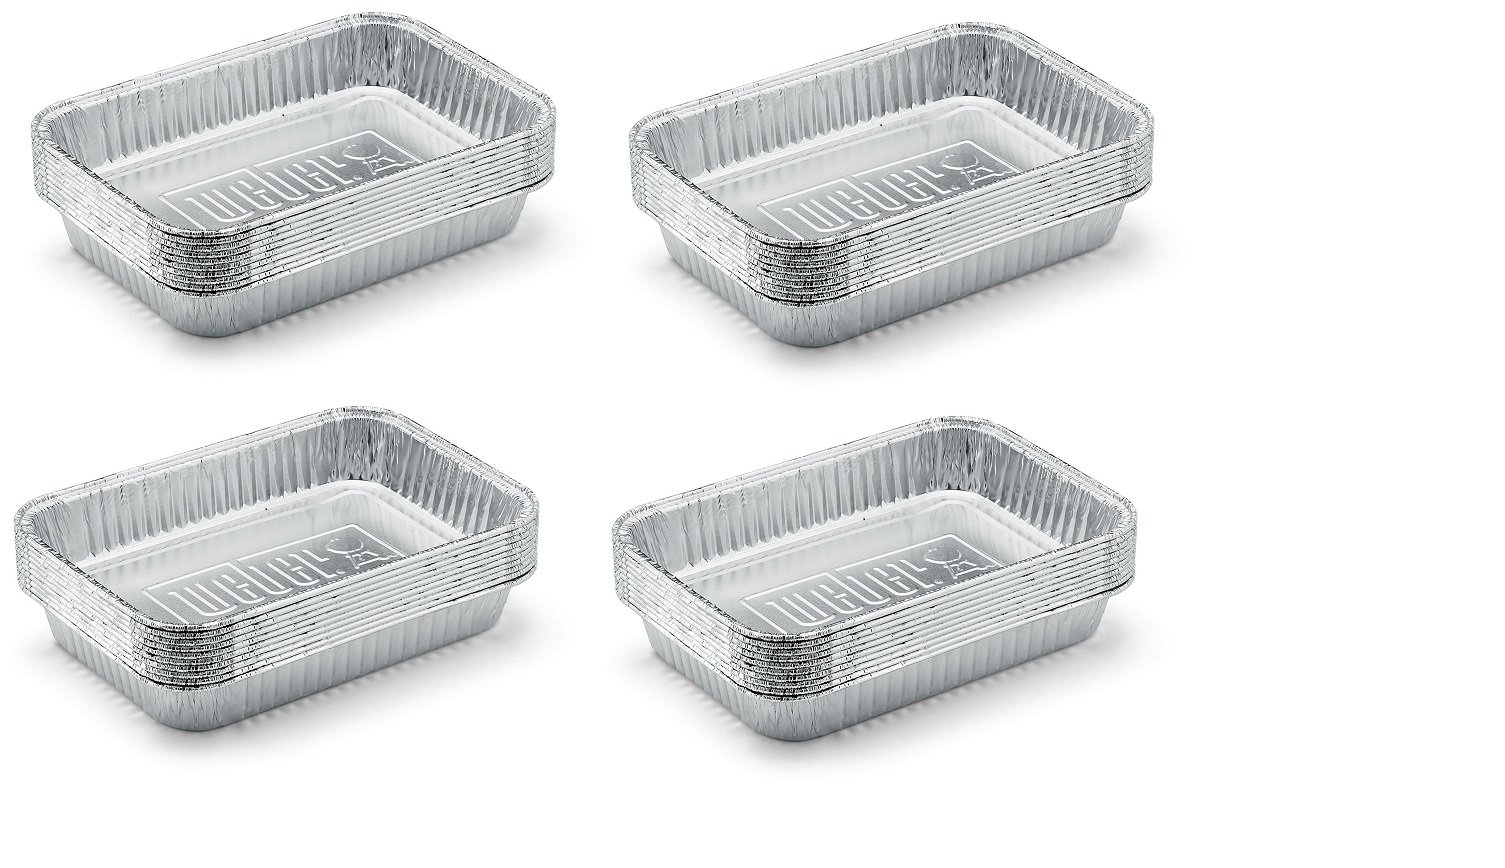 Weber 6415 Small 7-1/2-Inch-by-5-inch Aluminum Drip Pans, Set of 10 (4-Sets of 10)